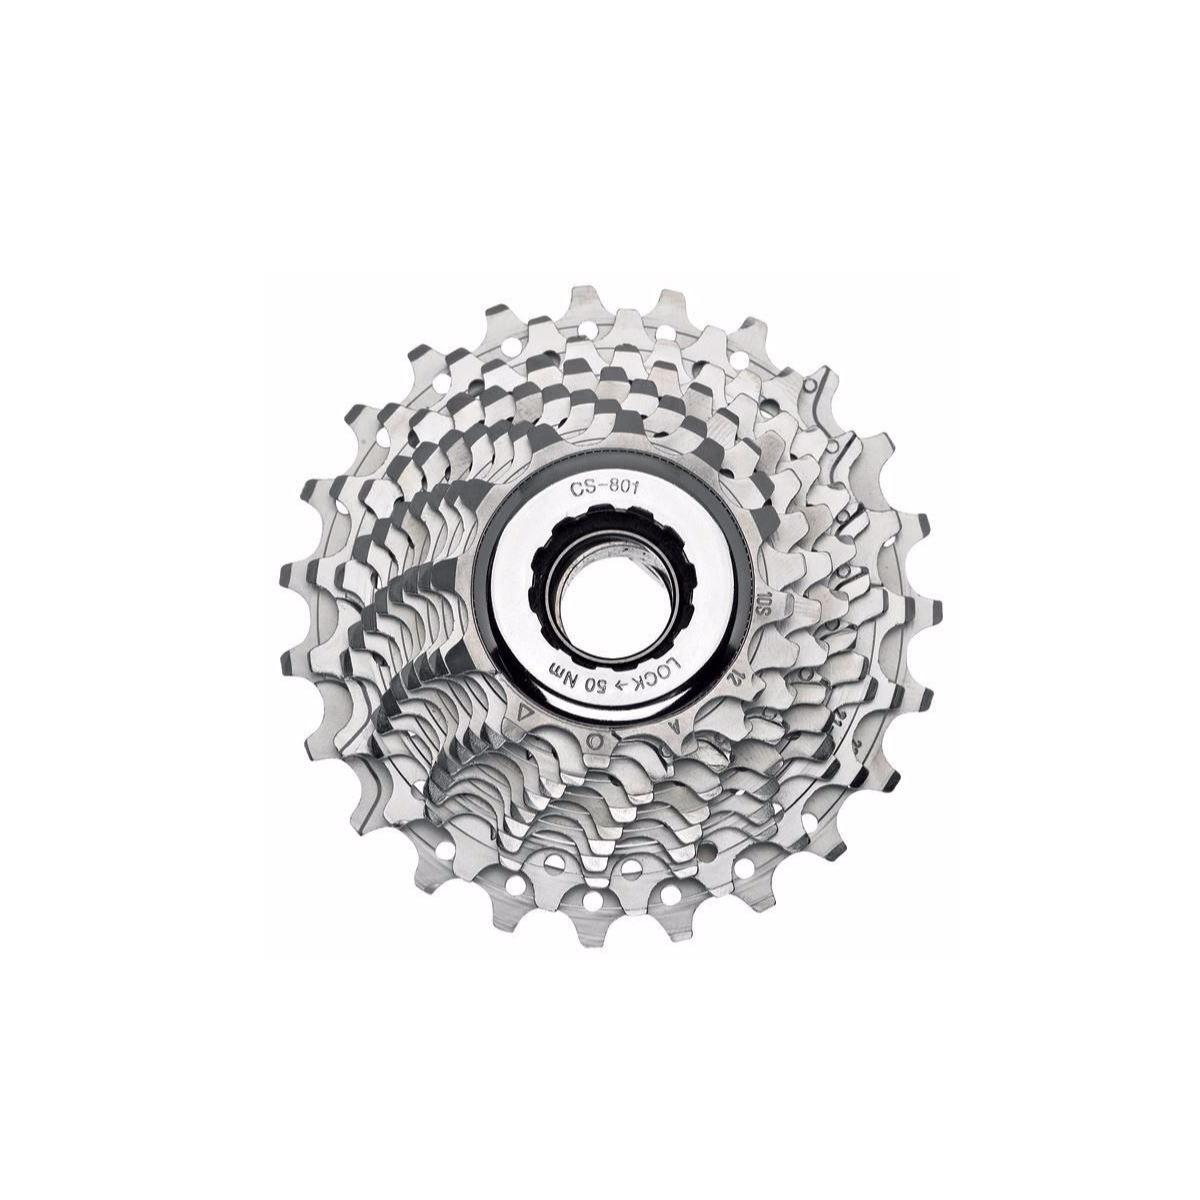 Campagnolo Veloce Cassette 9 Speed Ud 14-28T:  9Spd 14-28T